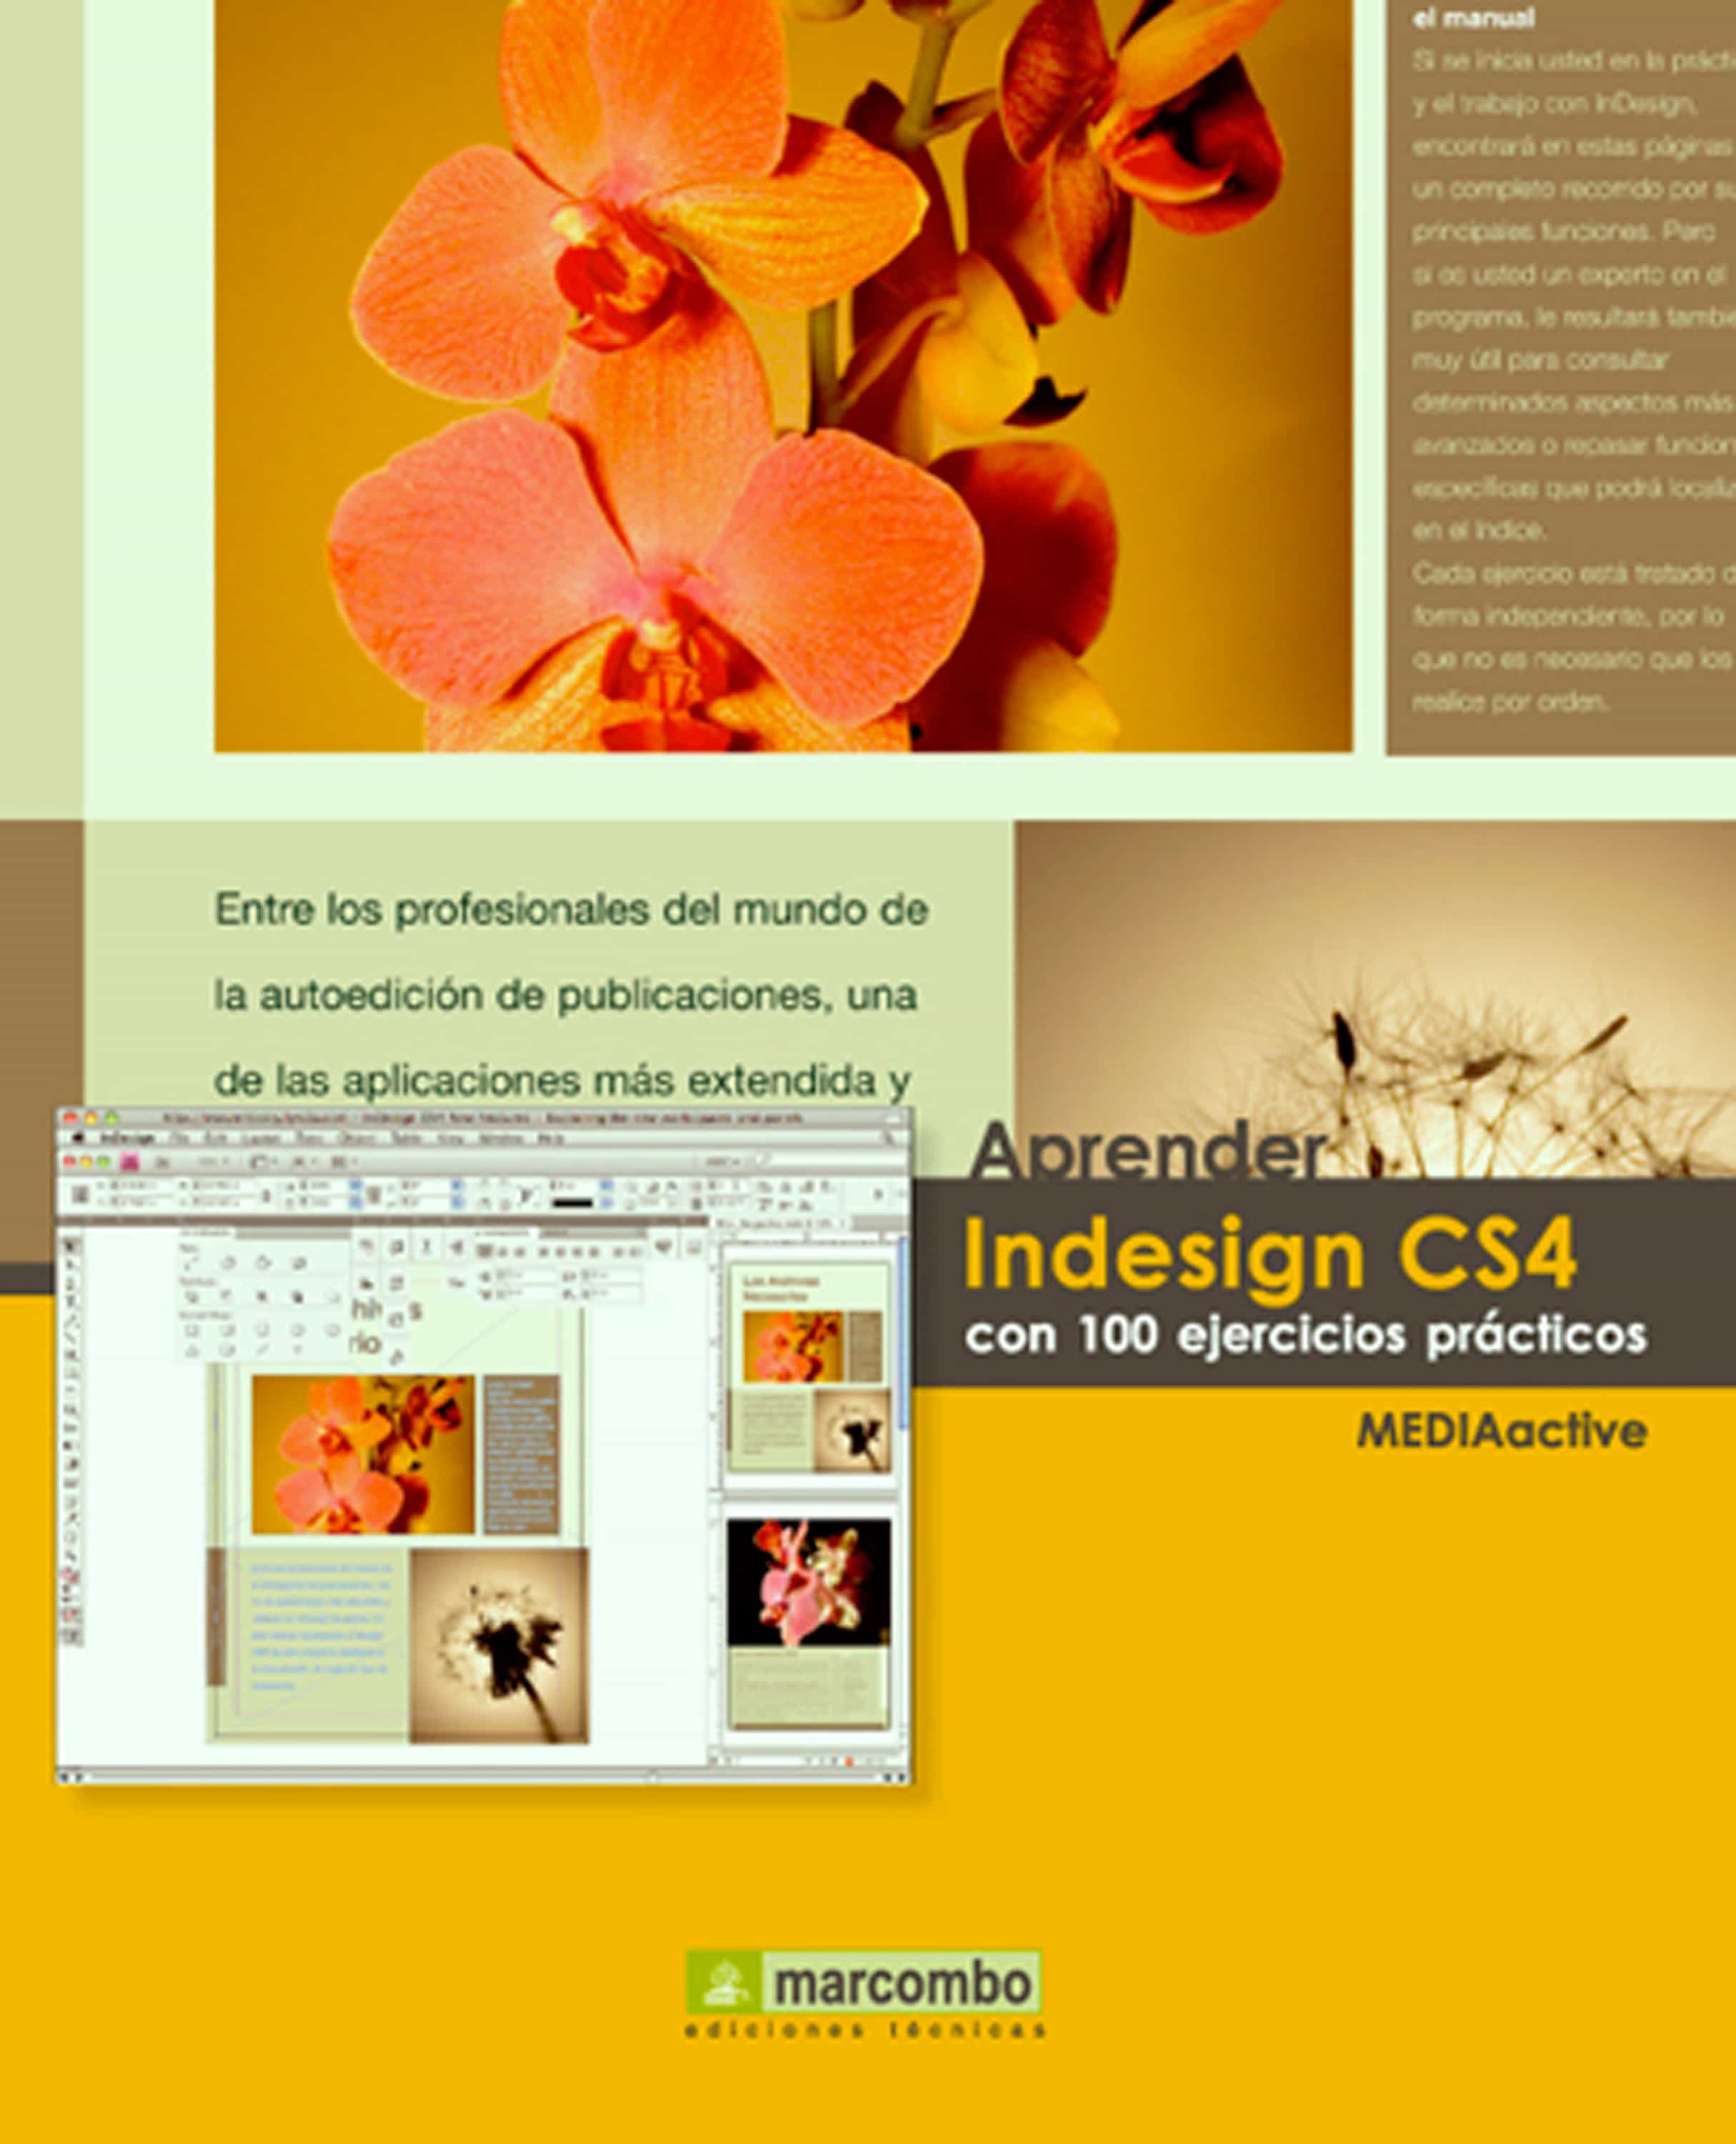 Aprender Indesign CS4 con 100 ejercicios prácticos (ebook)